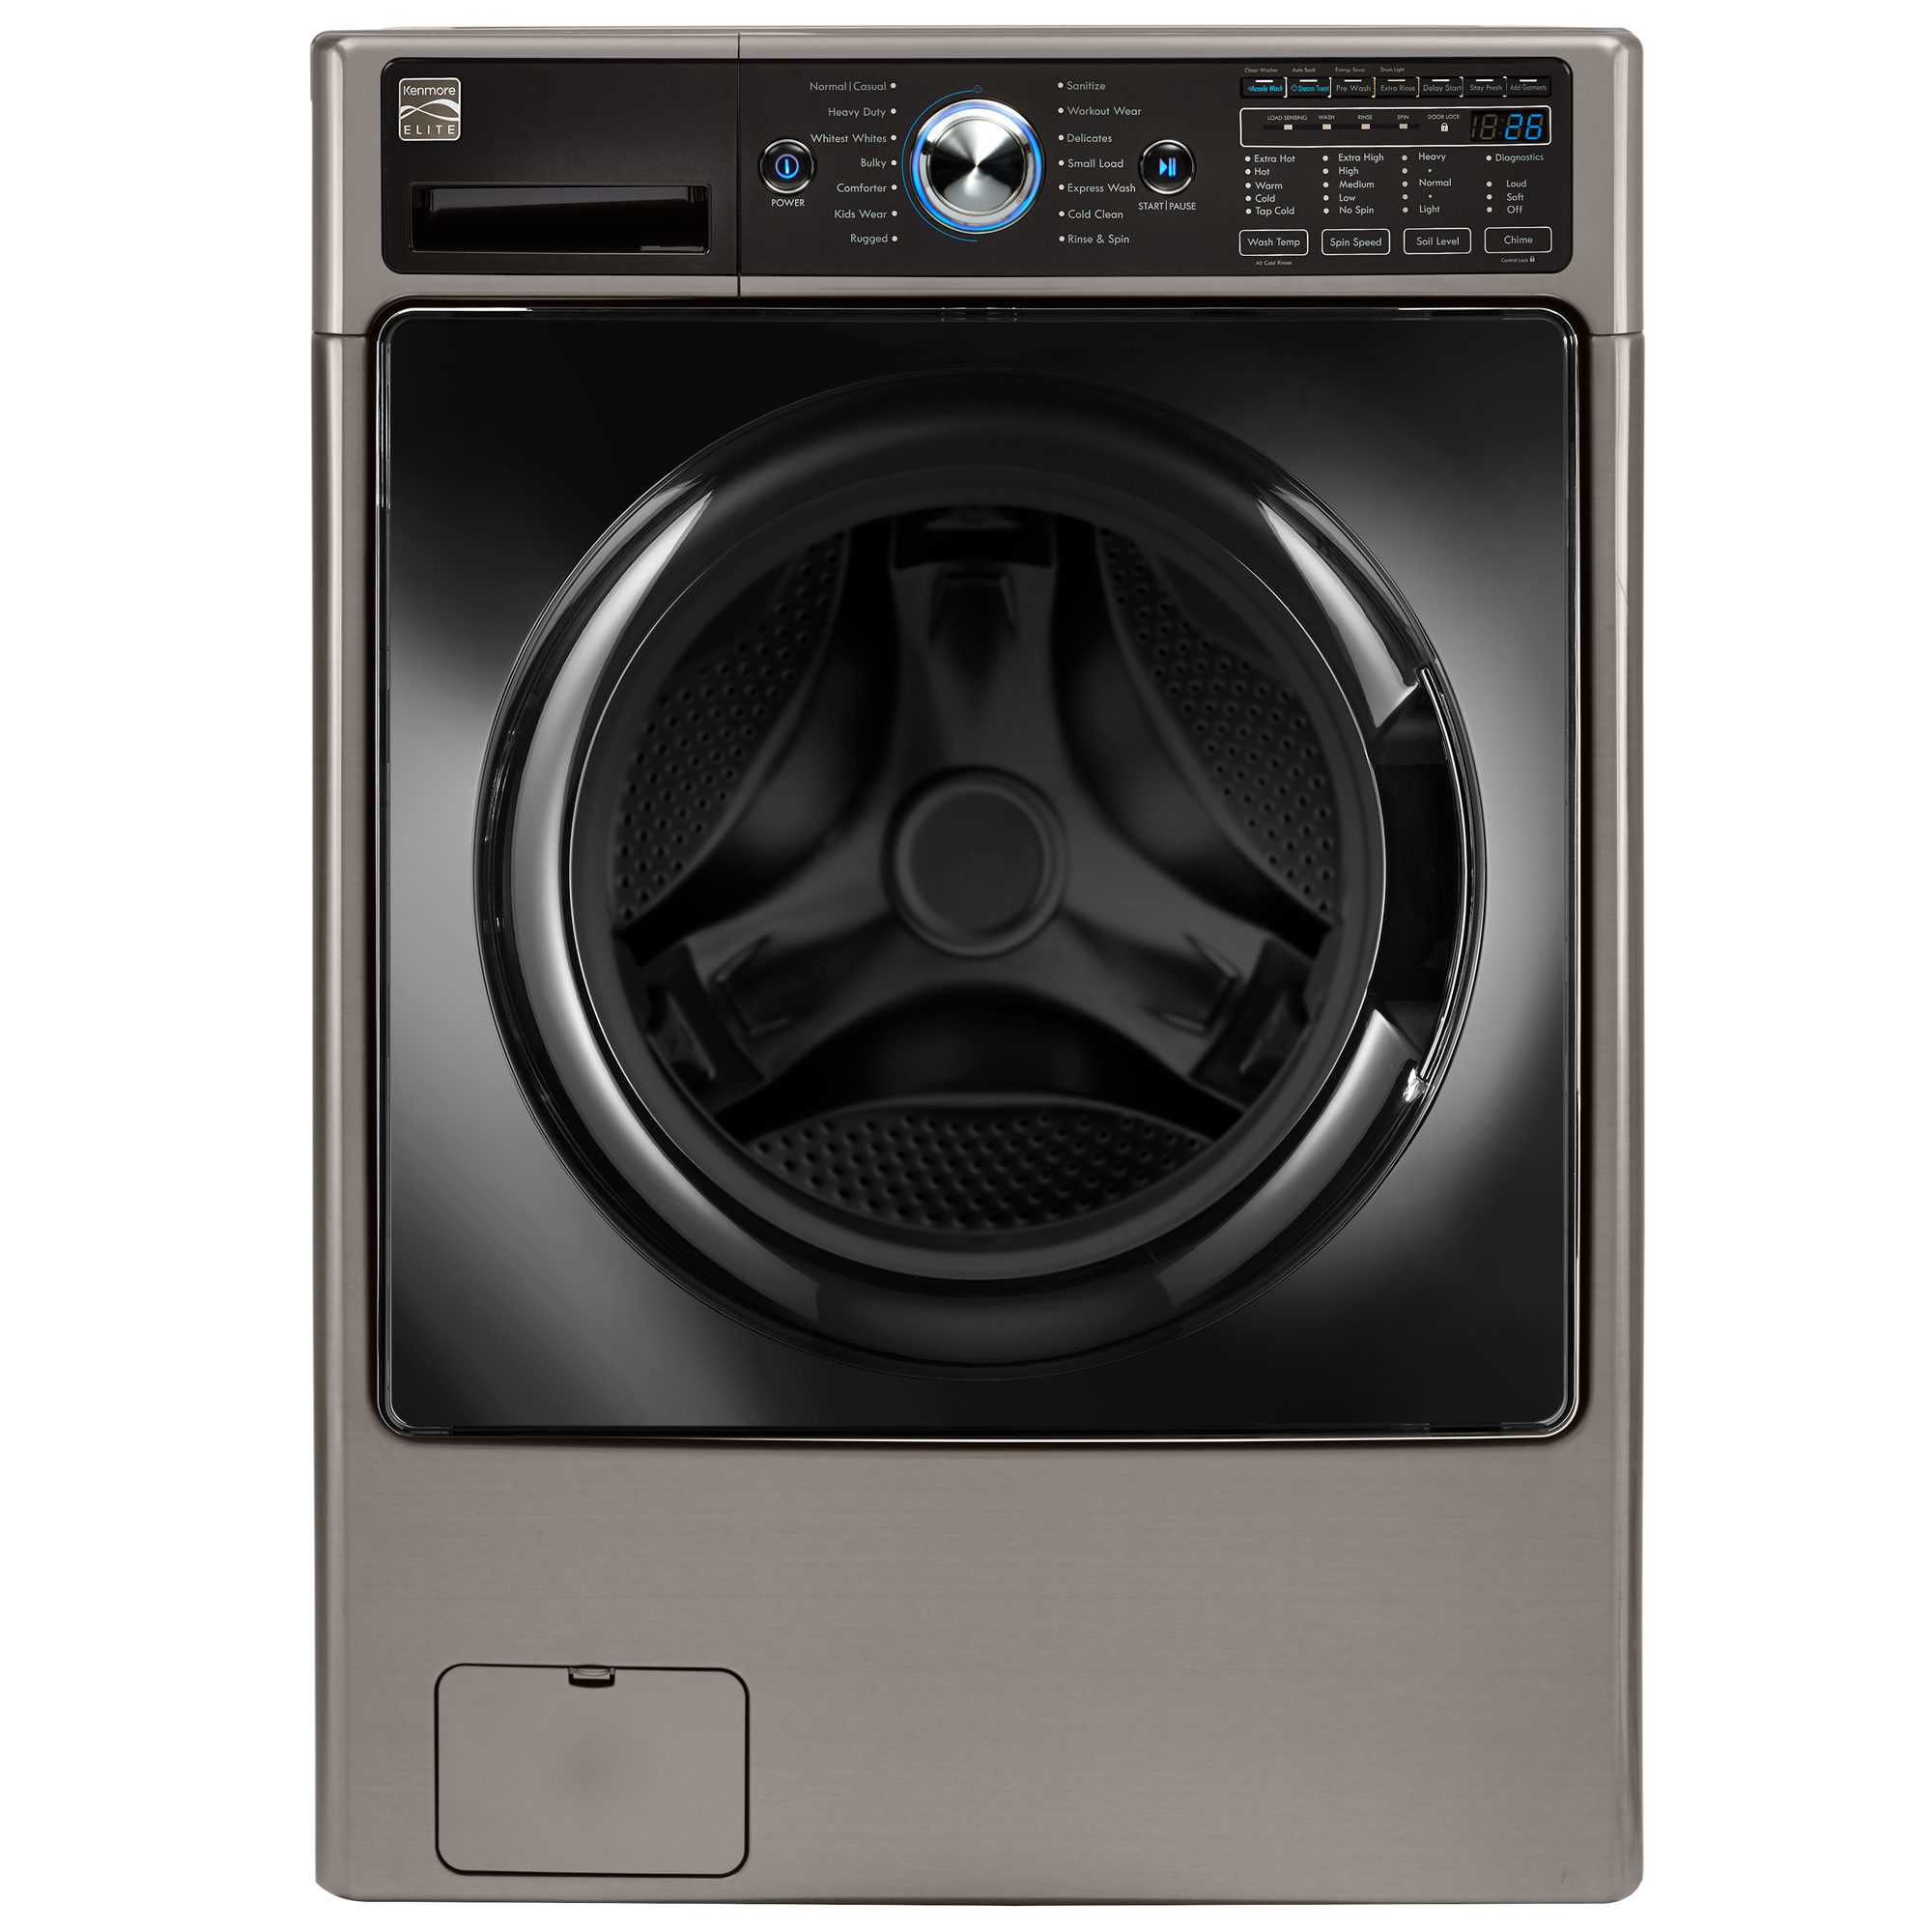 Kenmore Elite 4 5 cu ft Front Load Washer Energy Score 93 100